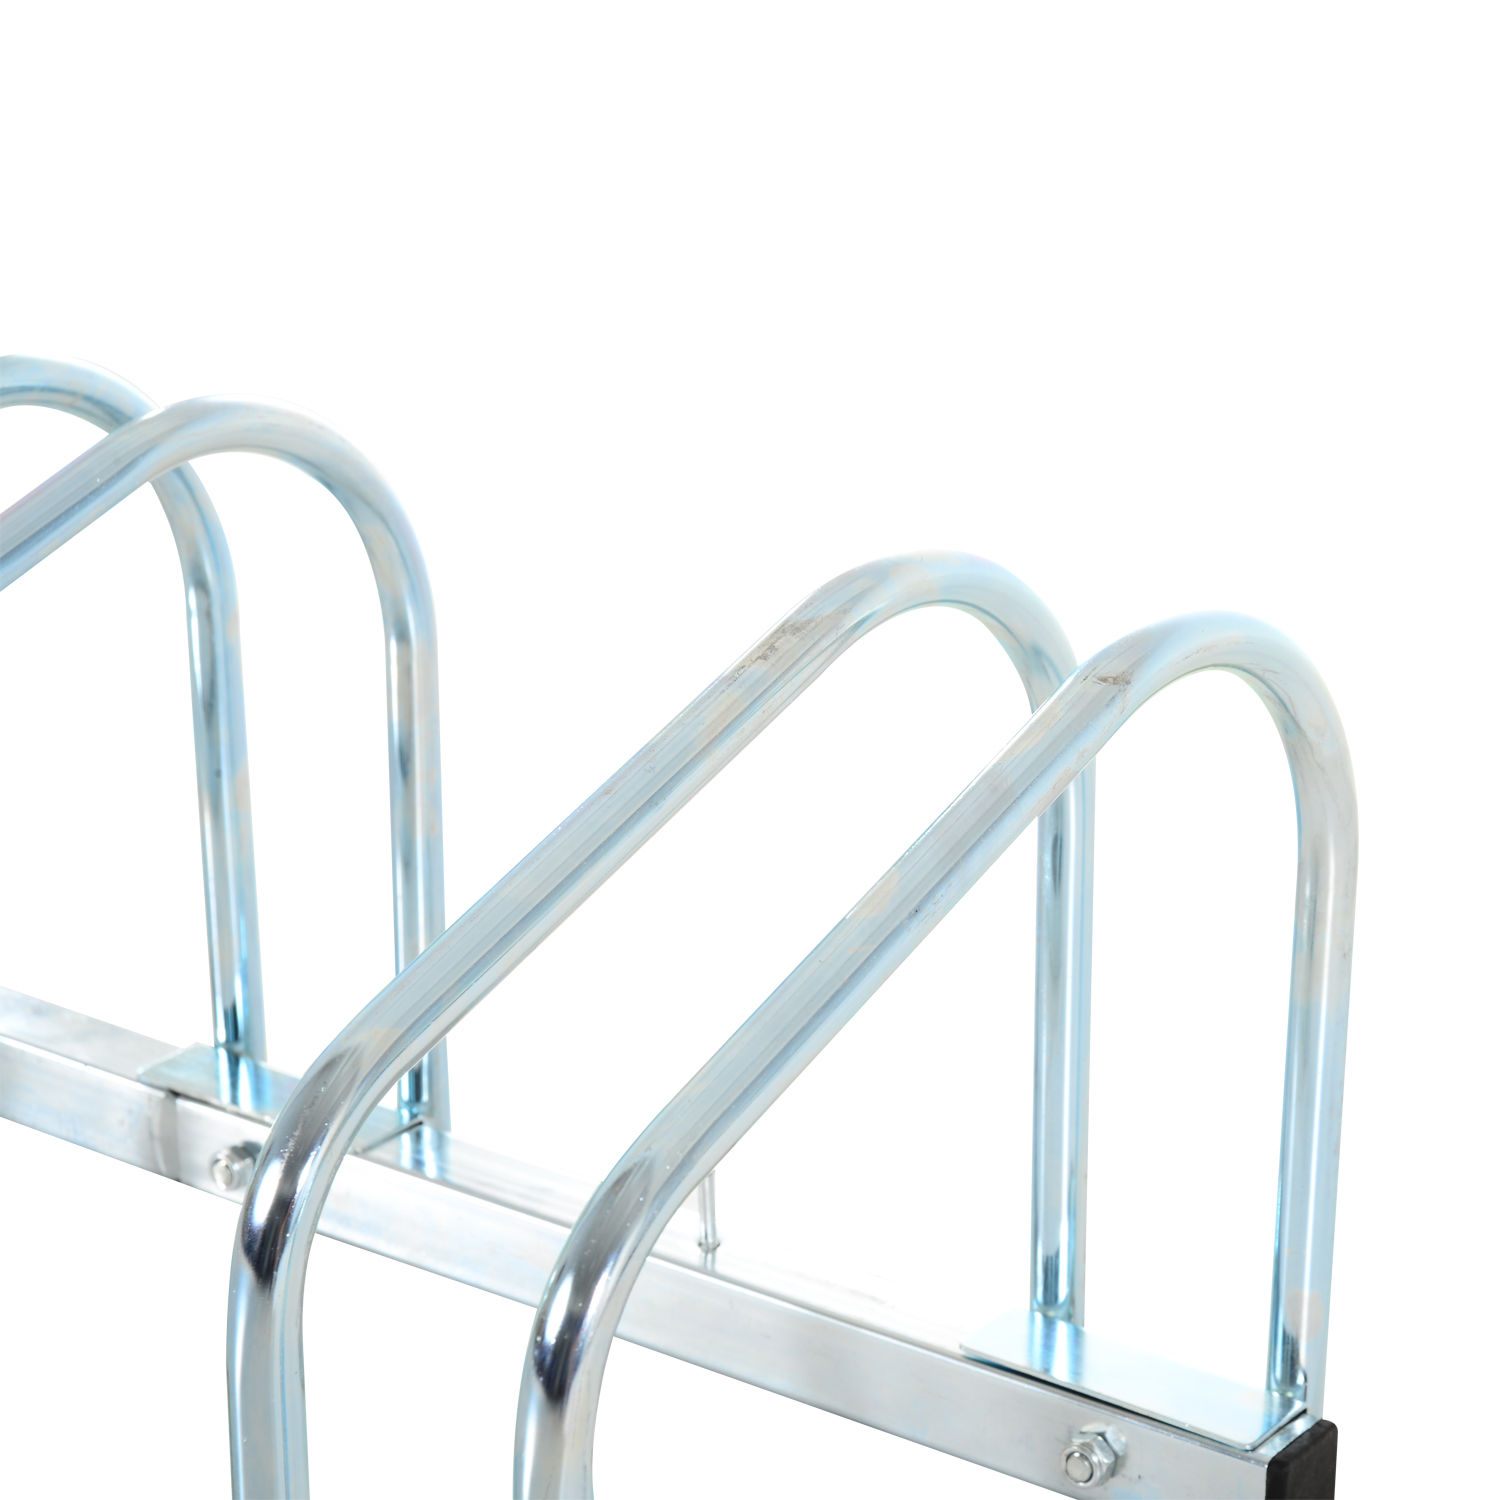 Bicycle-Bike-Parking-Cycle-Floor-Rack-Stand-Storage-Mount-Holder-Steel-Pipe miniatura 35